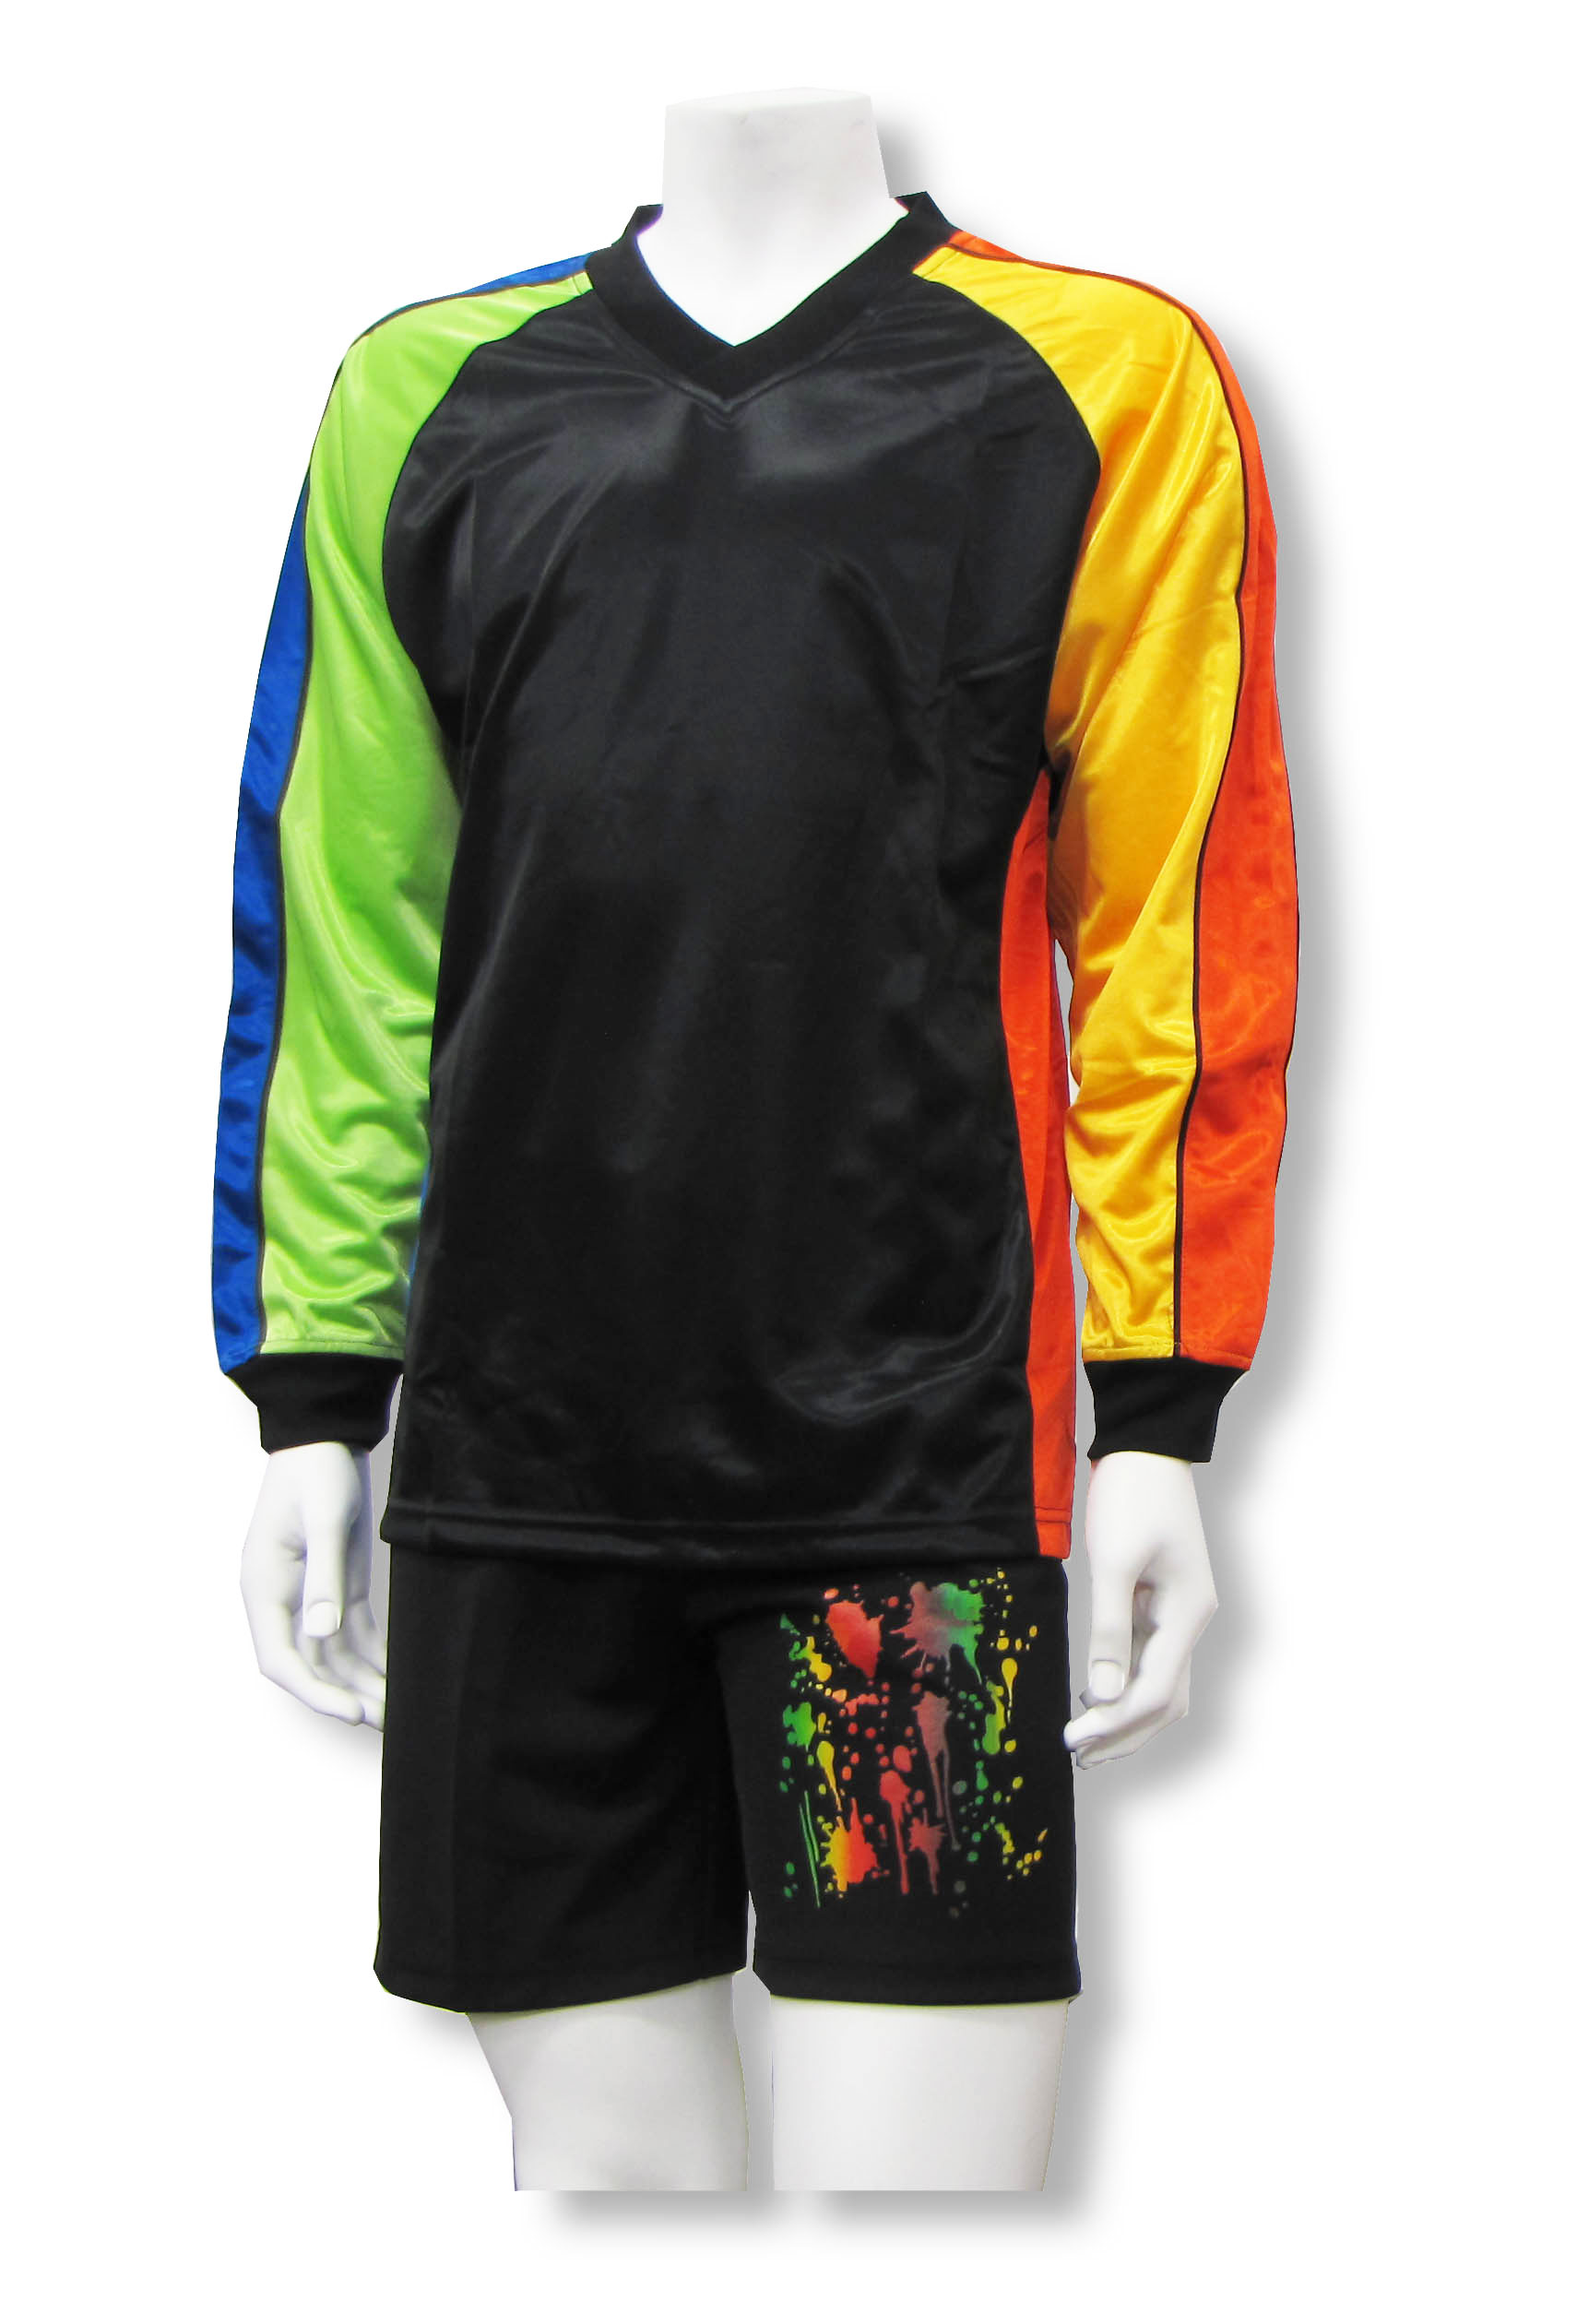 Blast long-sleeve soccer goalie set with jersey and shorts by Code Four Athletics